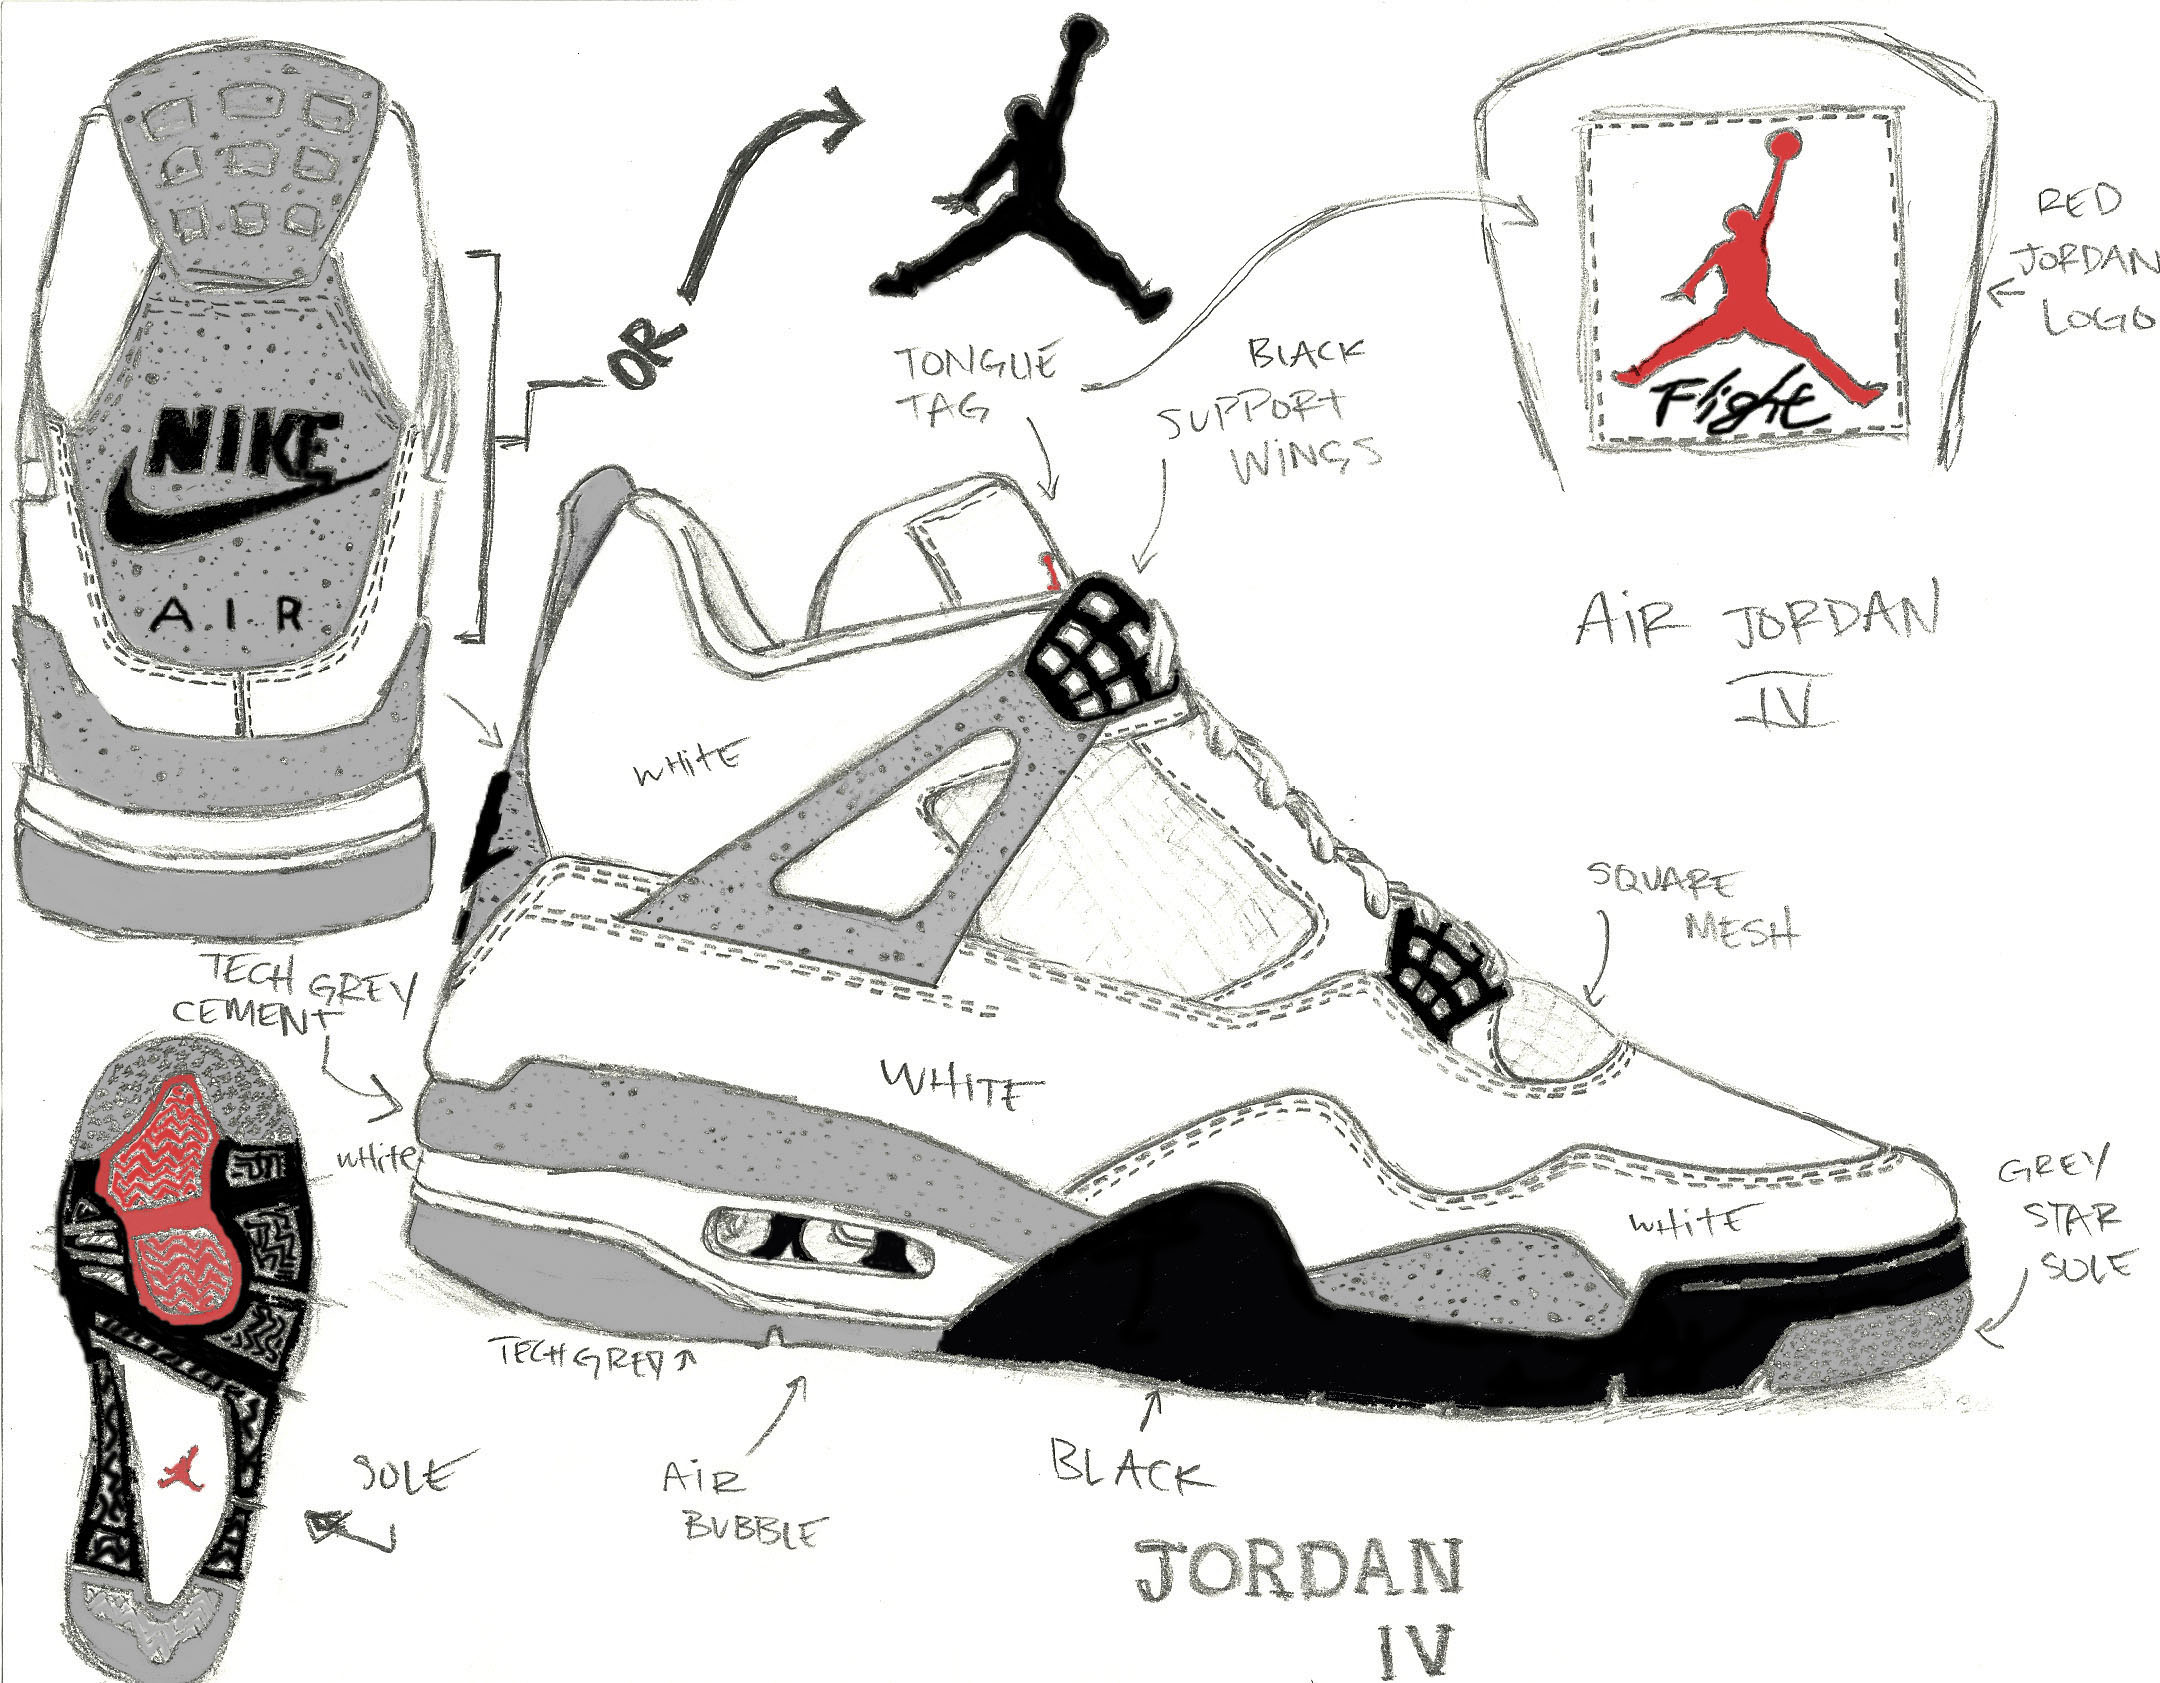 Drawn shoe jordan retro Sole Cement Jordan Air Origins